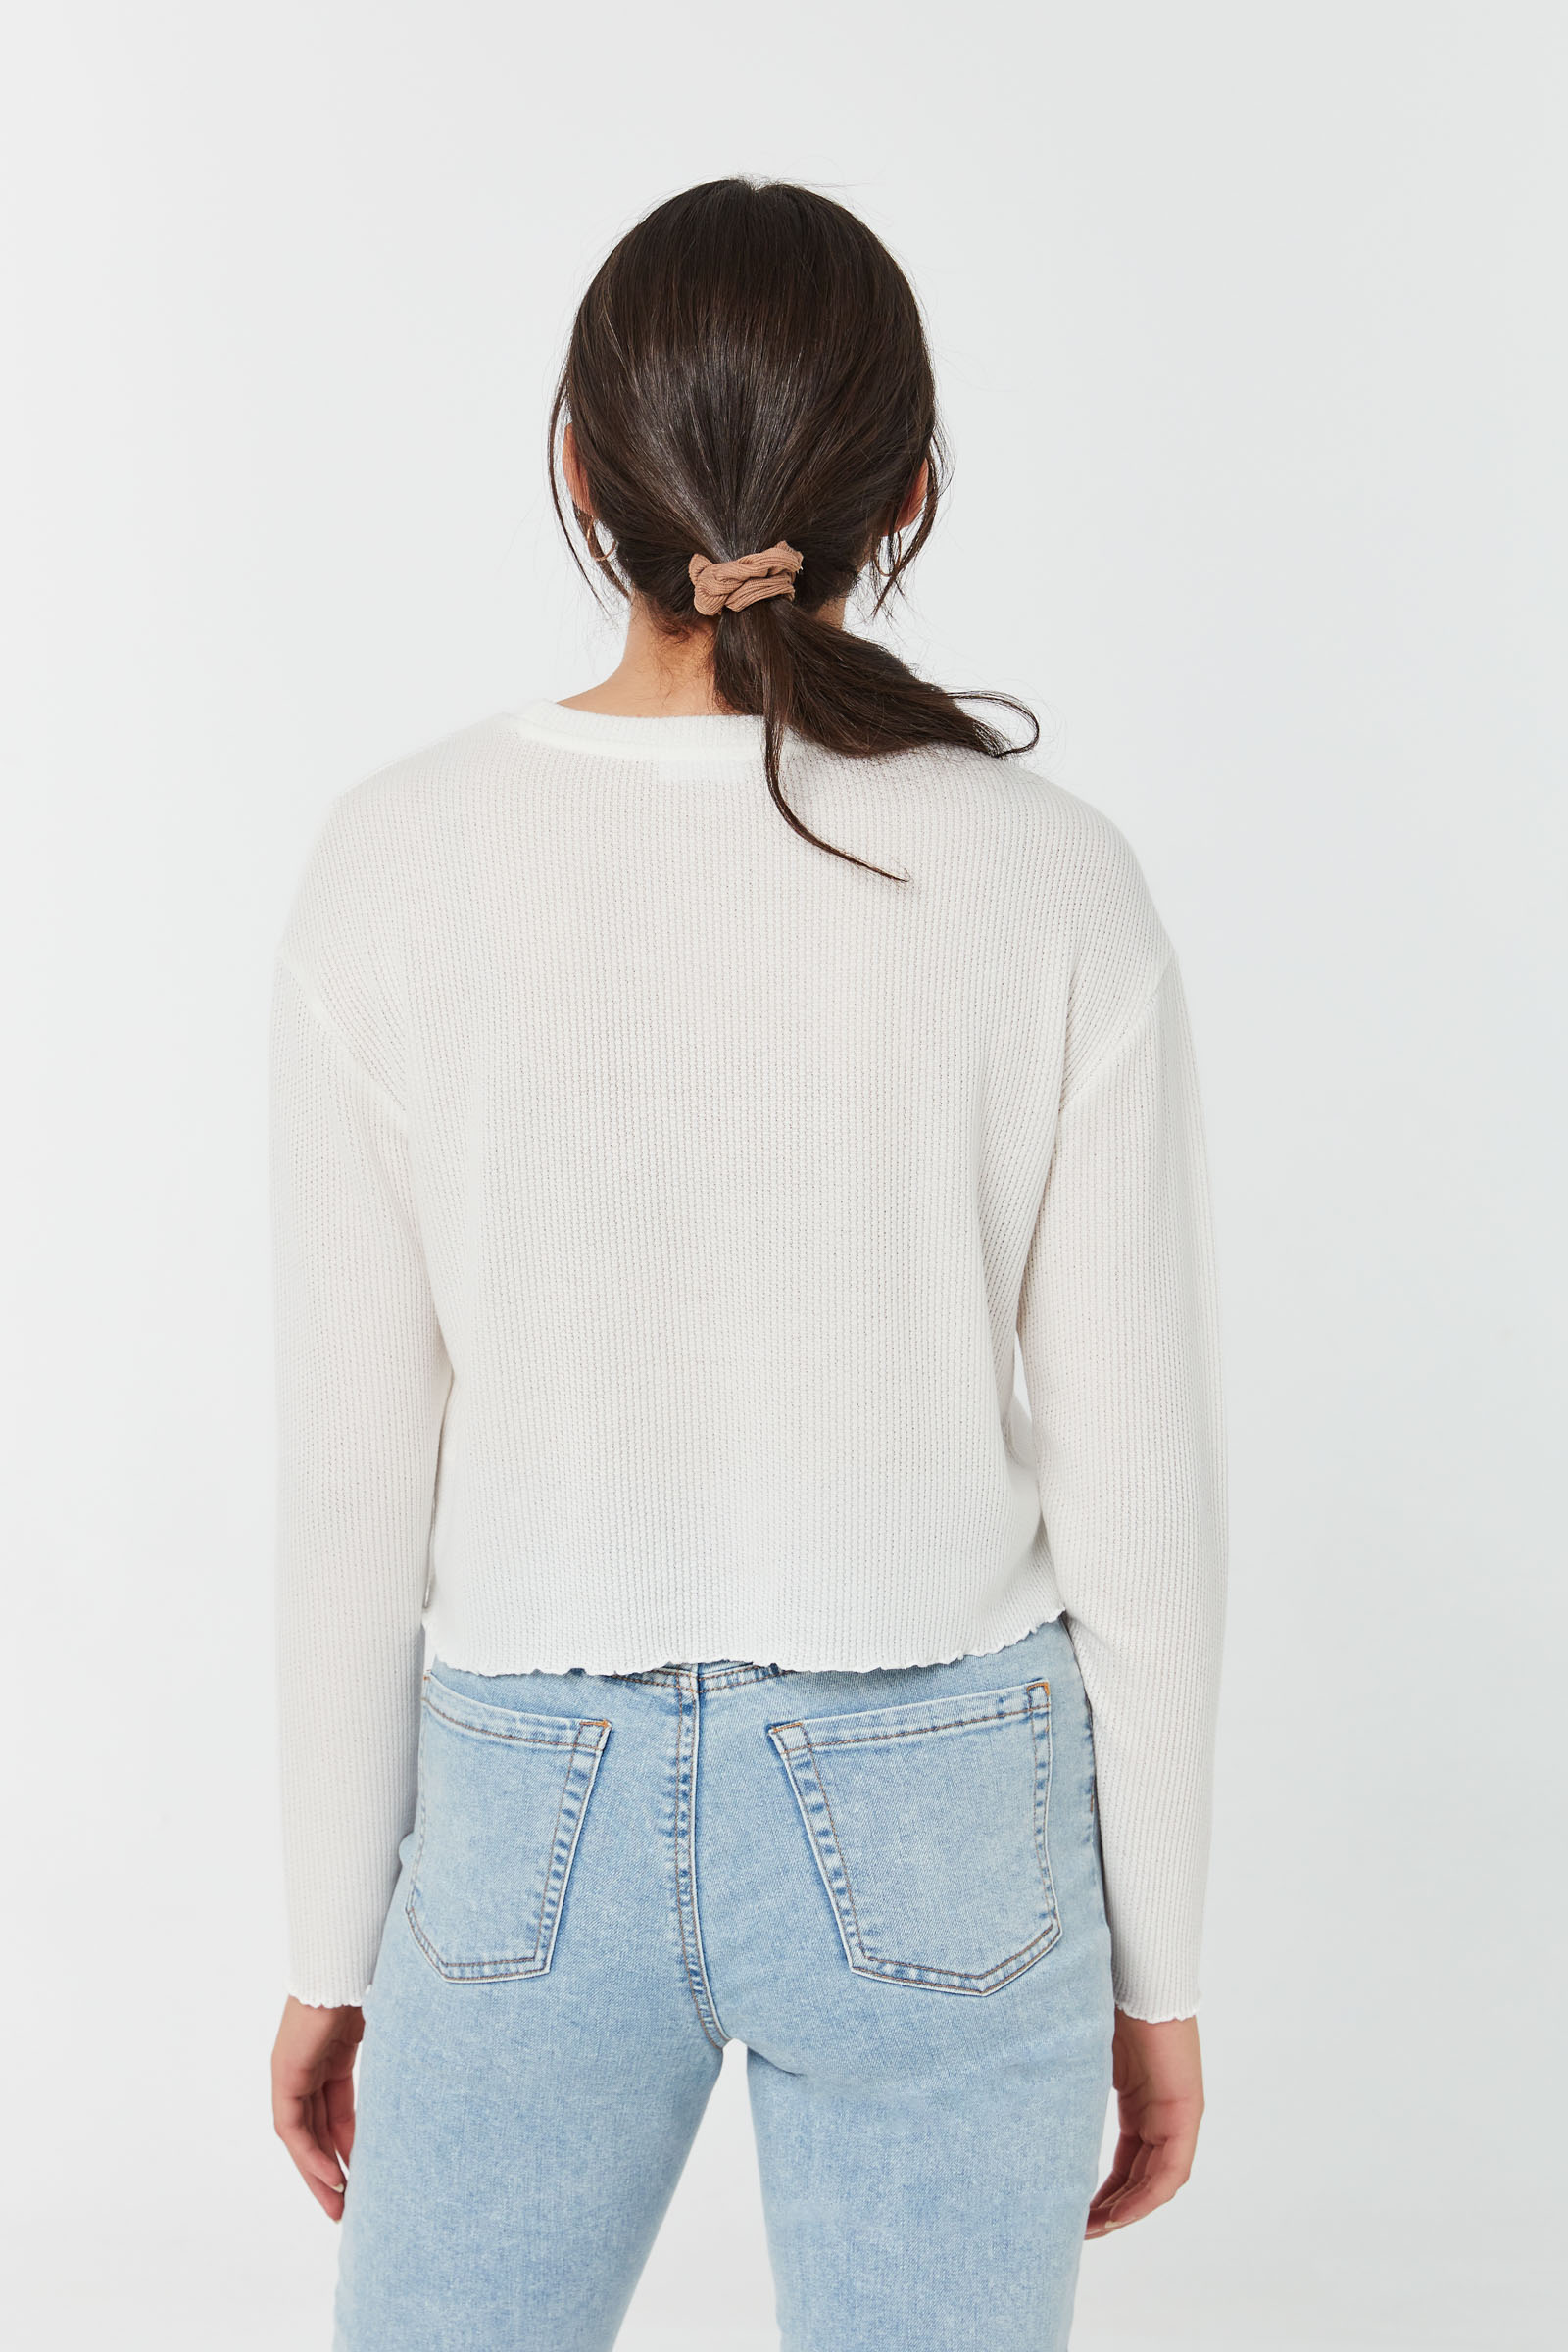 Textured Cropped Boxy Tee